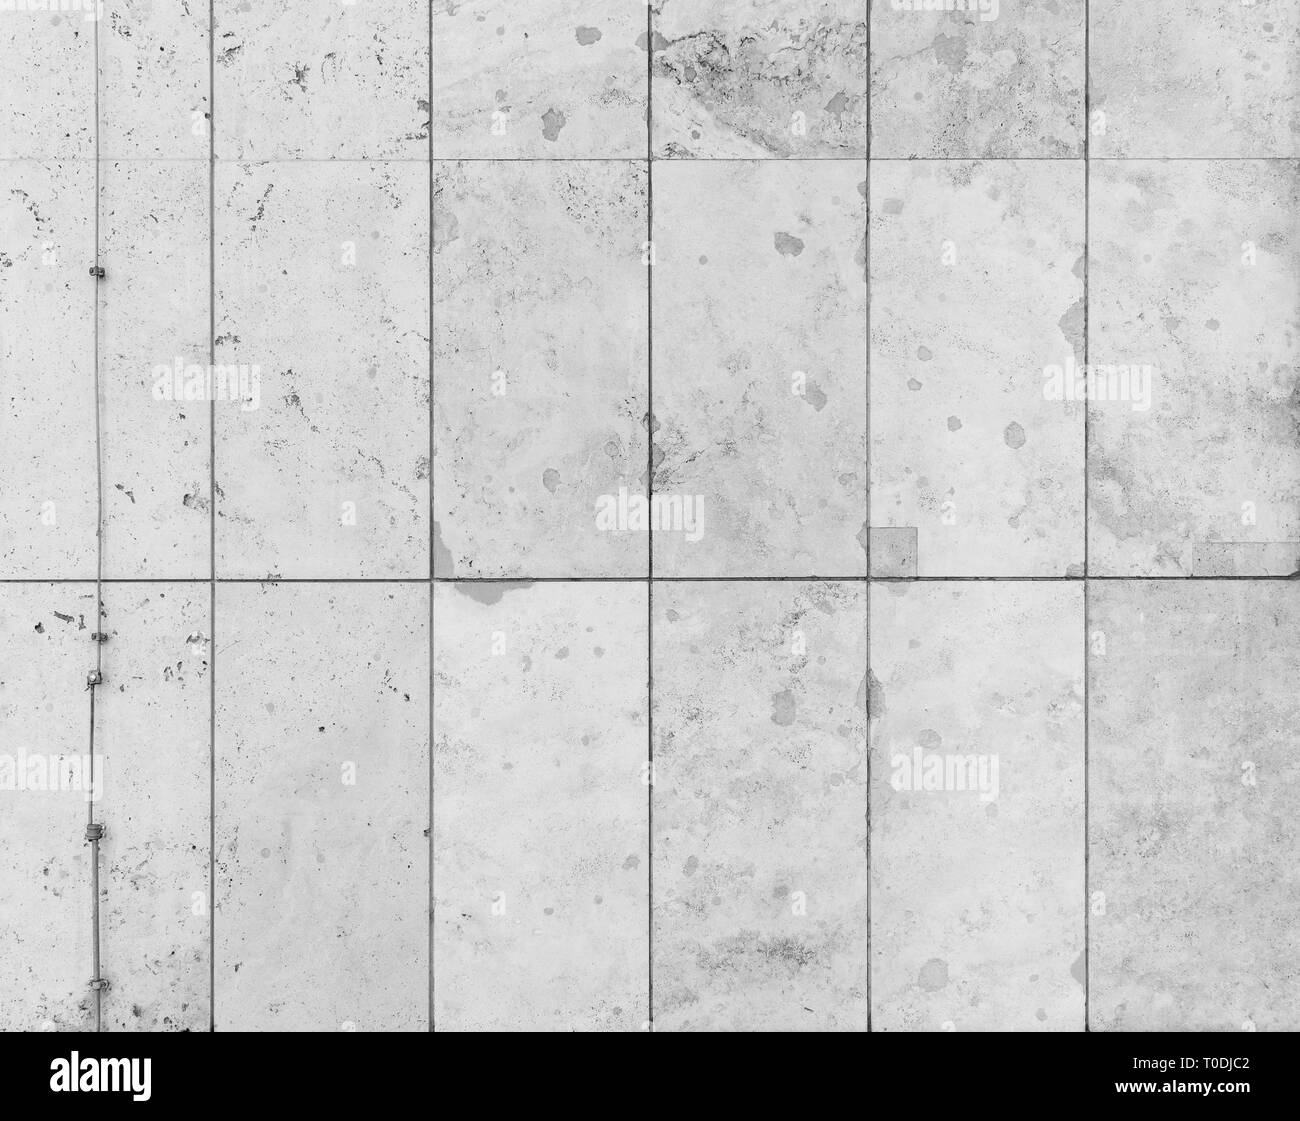 Full frame background of a modern and a bit broken wall or building exterior made of abstract stone slabs in black and white. Stock Photo